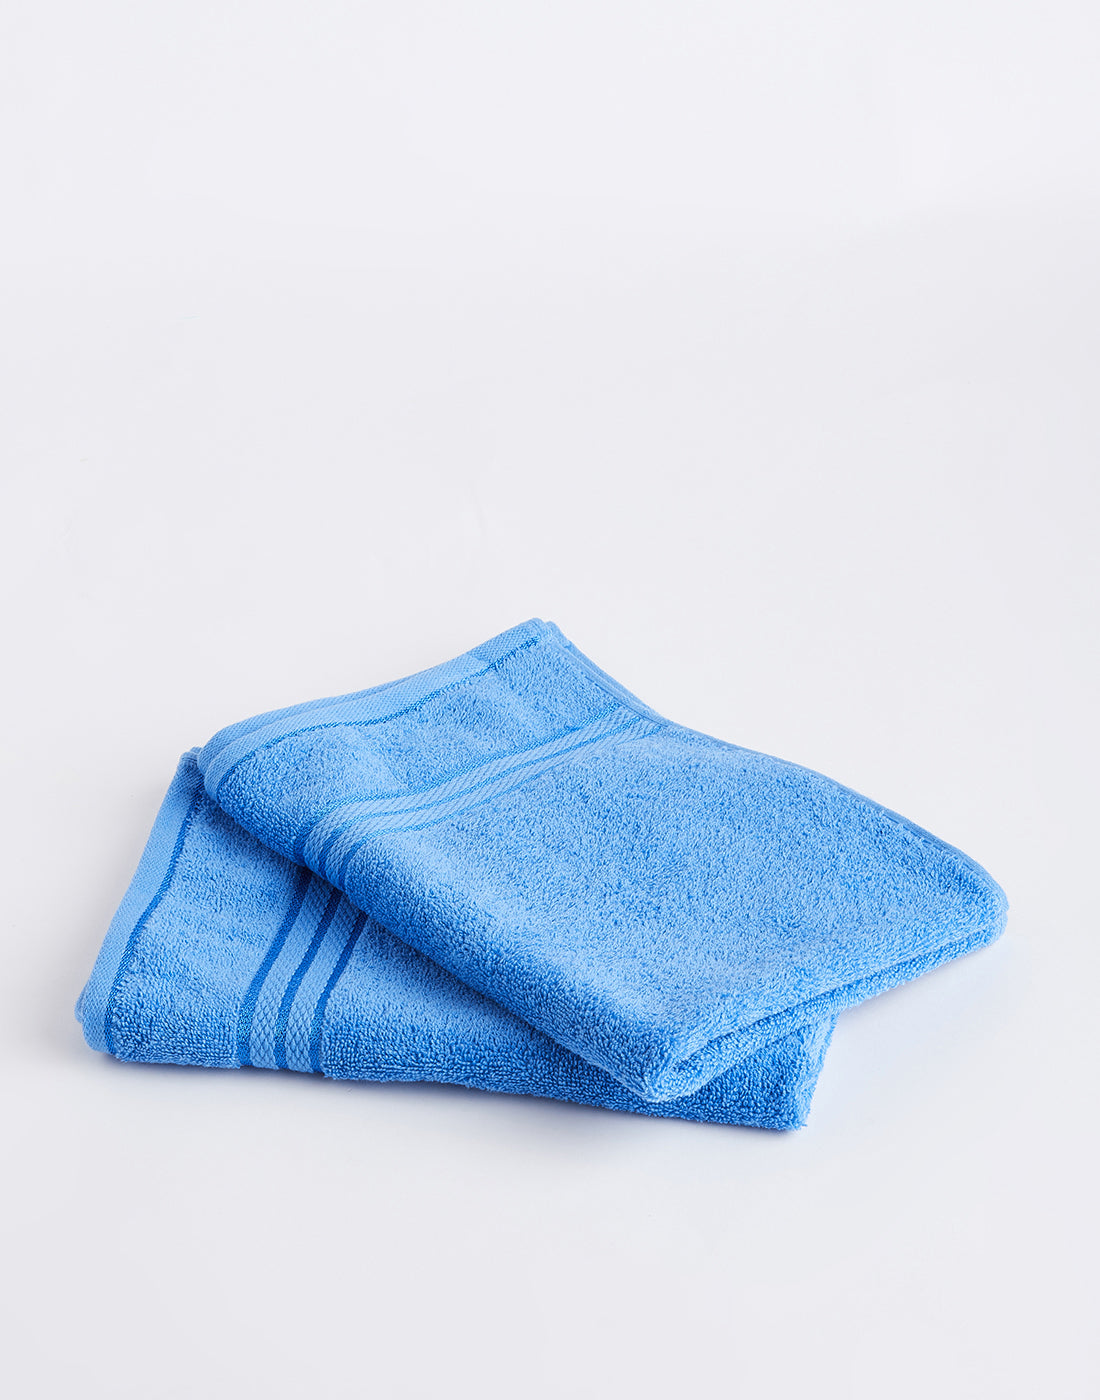 Octave Royal Blue Set of 2 Cotton Hand Towels